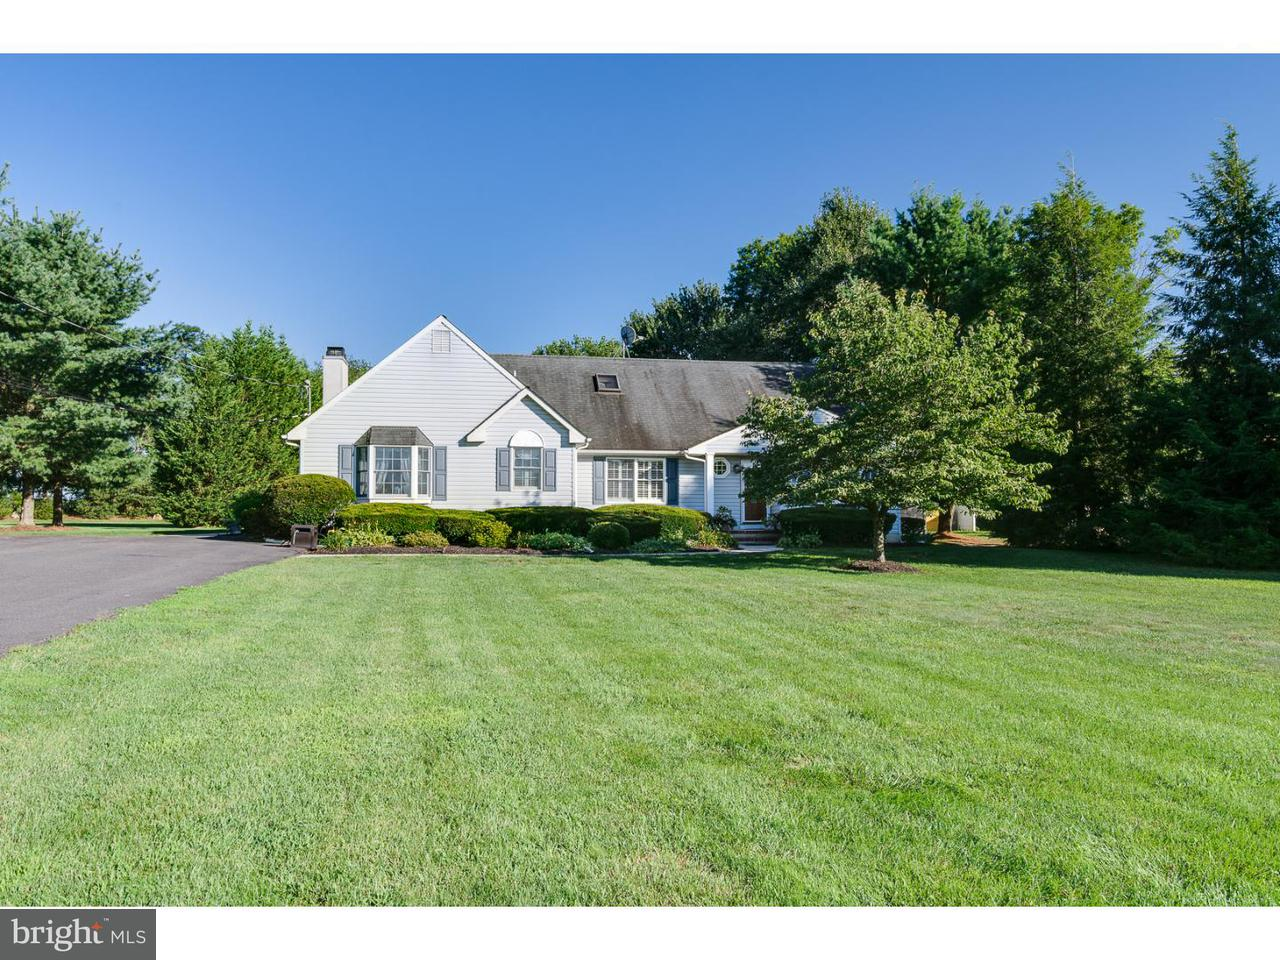 Single Family Home for Sale at 891 MONMOUTH Road Cream Ridge, New Jersey 08514 United States